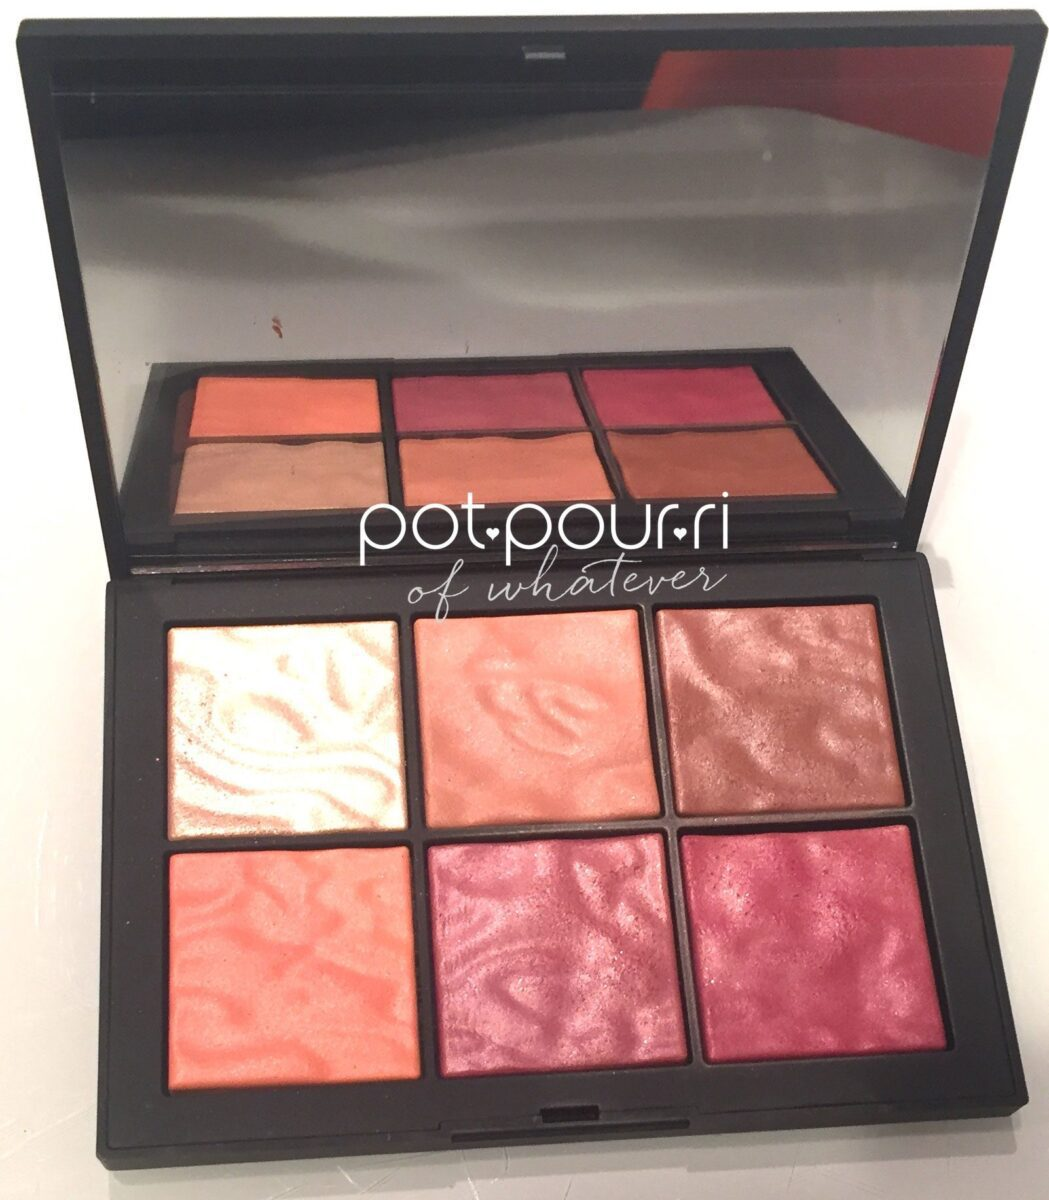 NARS EXPOSED CHEEK PALETTE LOCK AND CLASP CLOSURE, MIRROR AND SIX SHADES